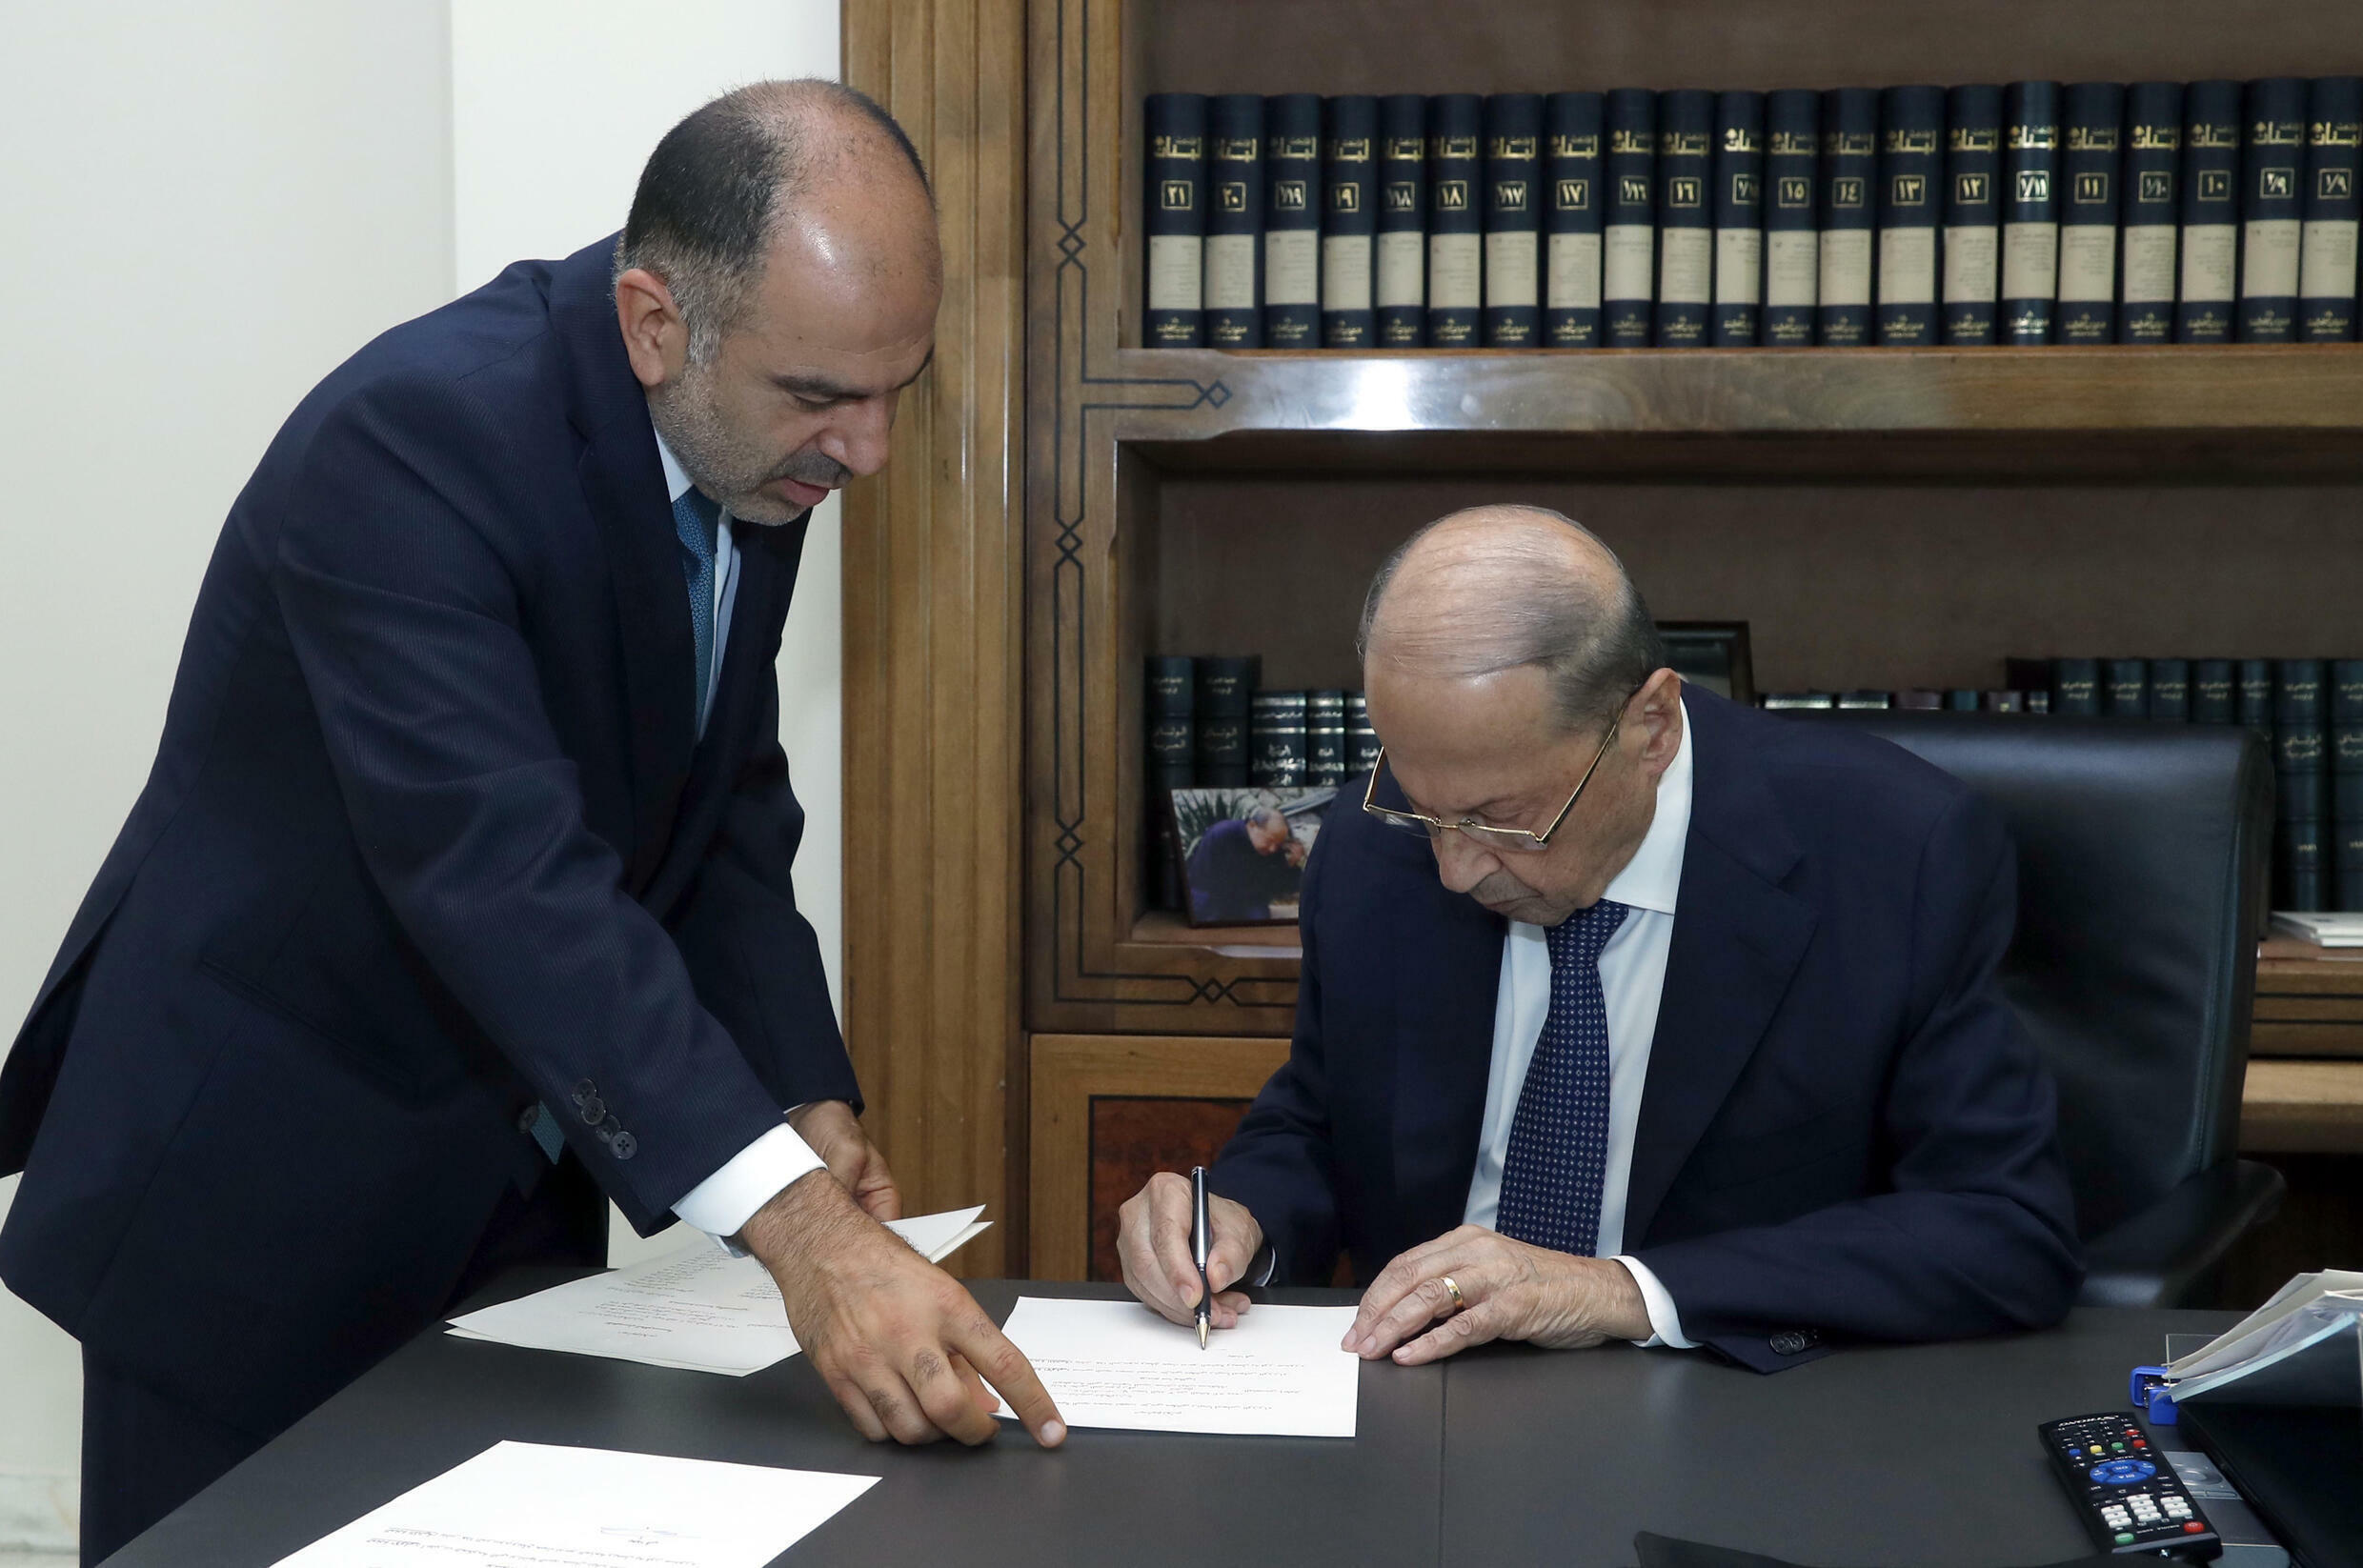 President Michel Aoun signs a decree for the formation of a new Lebanese government after meeting prime minister-designate Najib Mikati